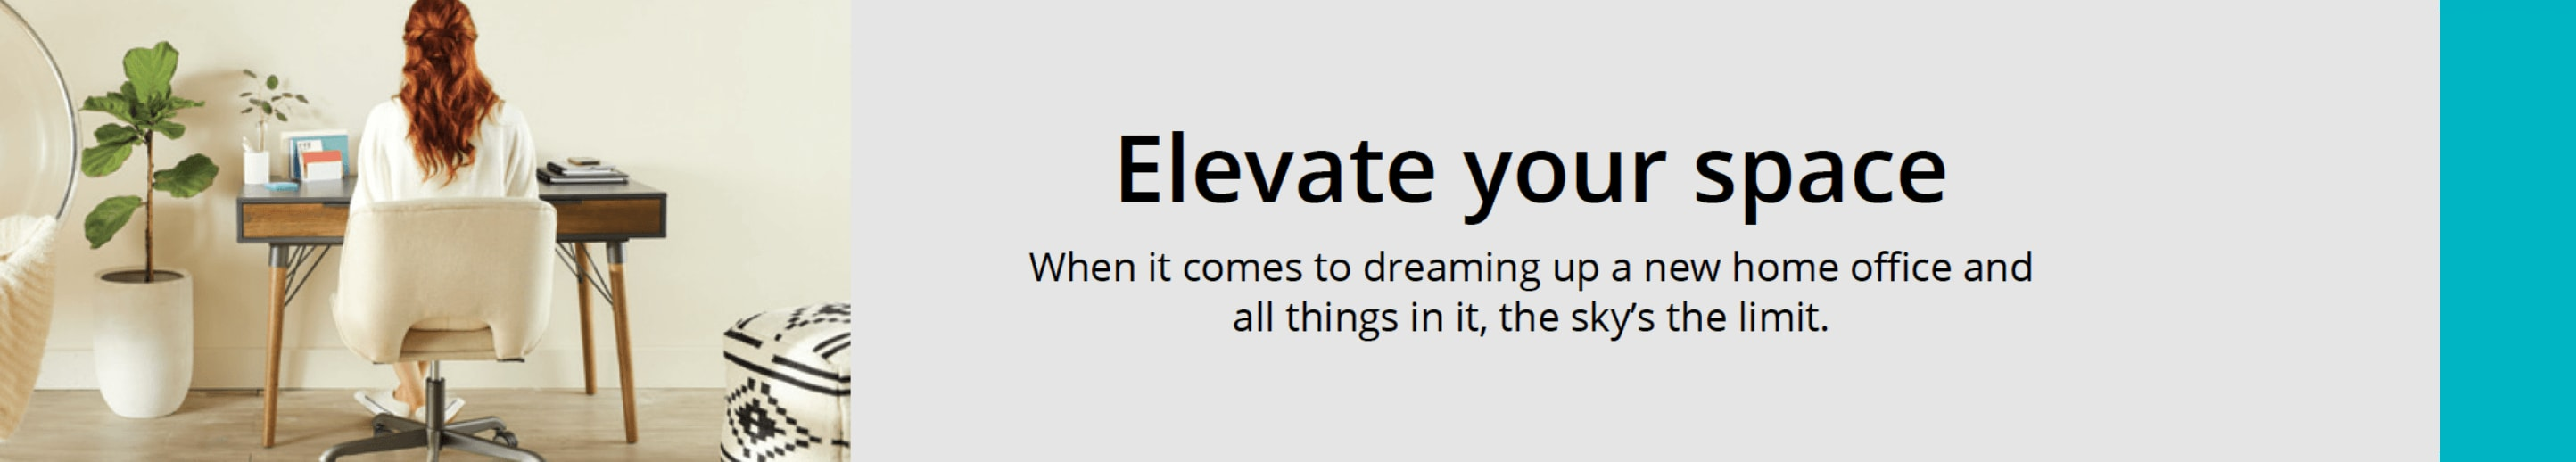 Elevate your space